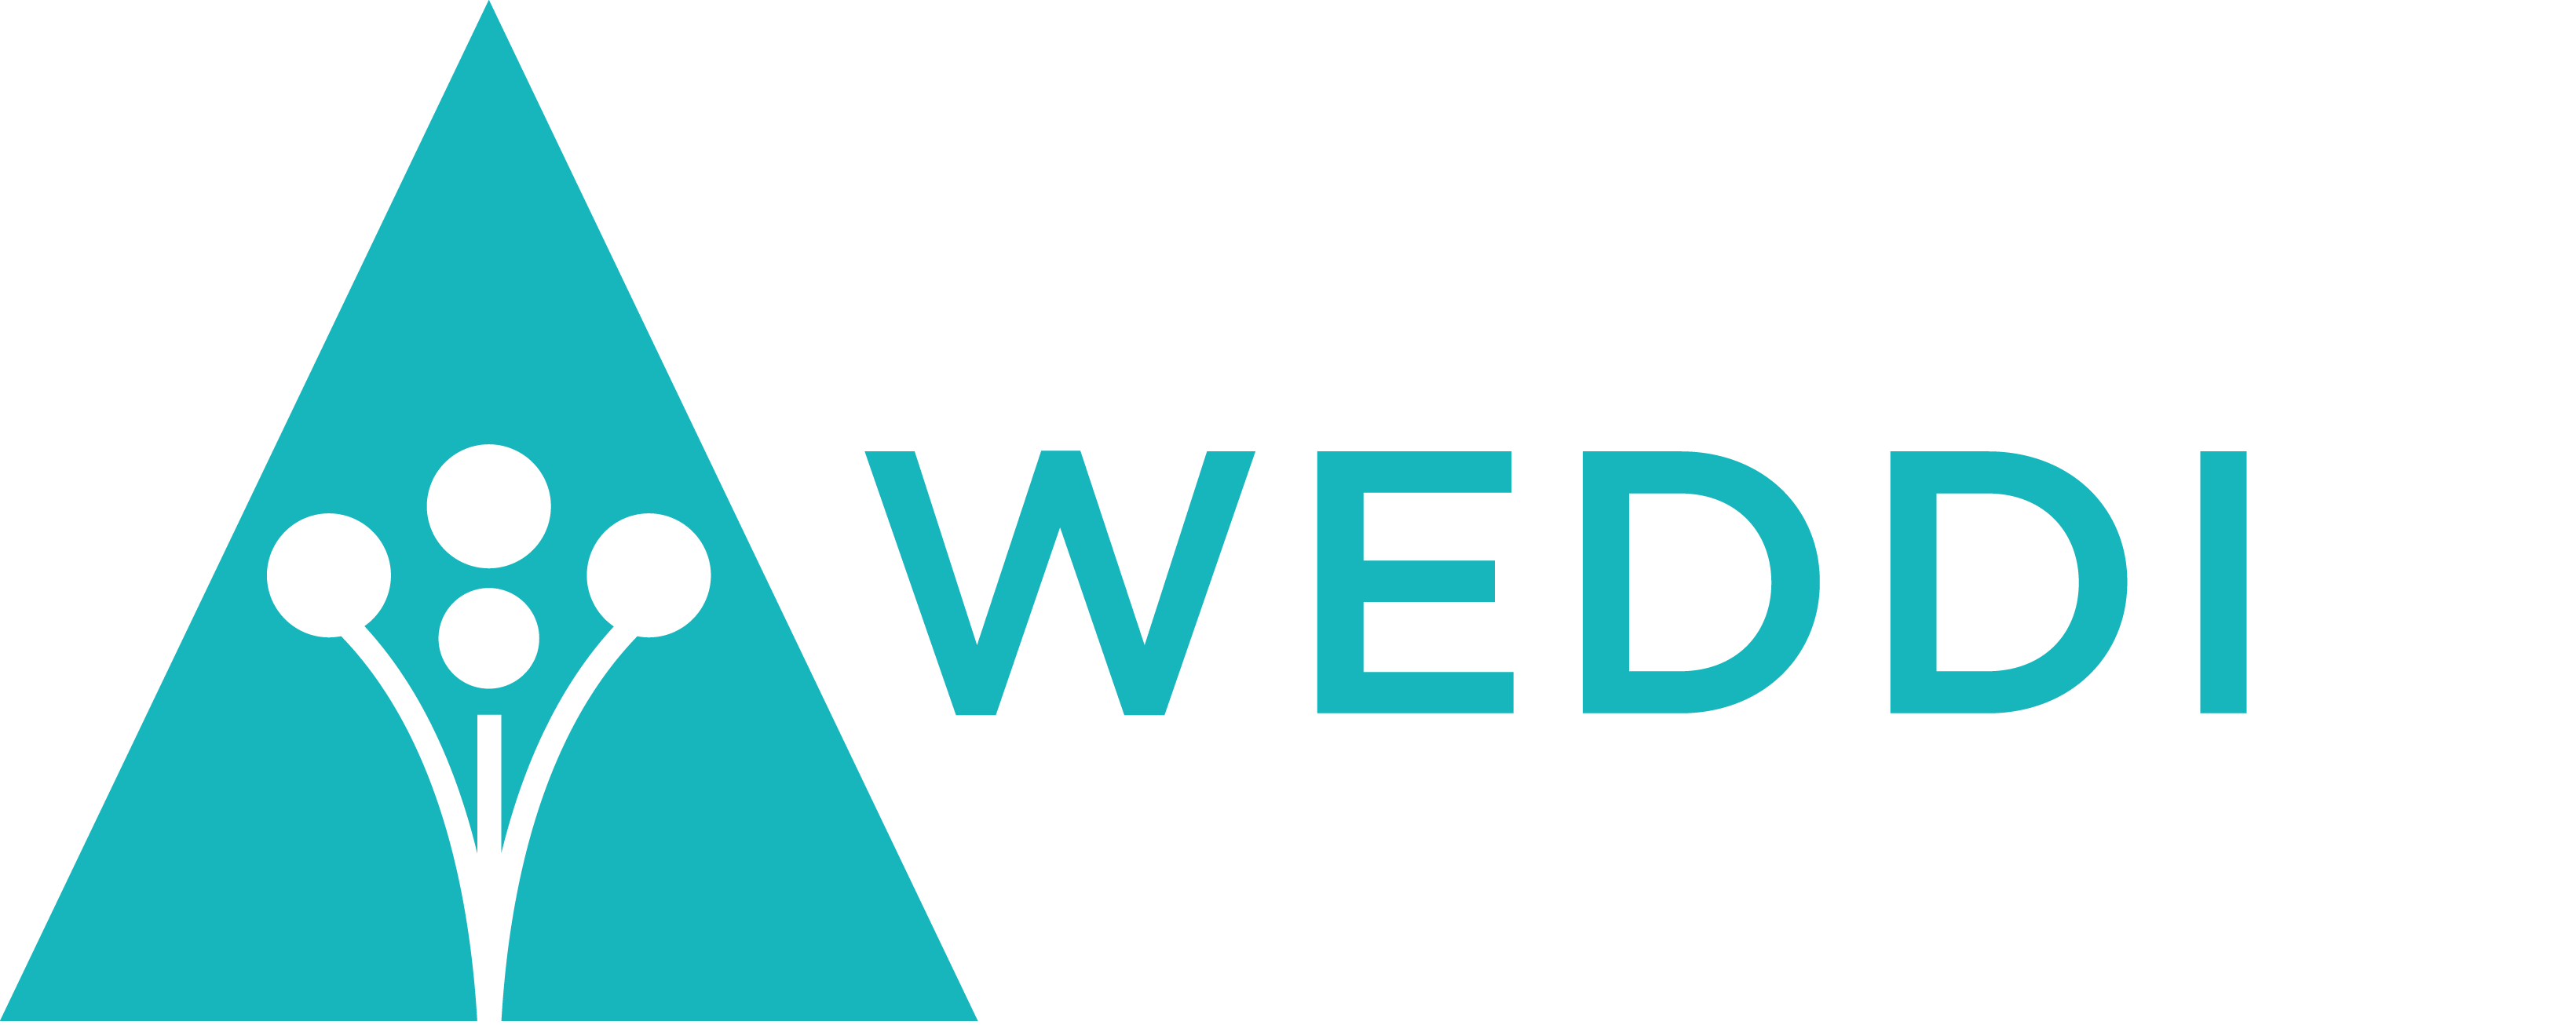 2016 Weddi Awards